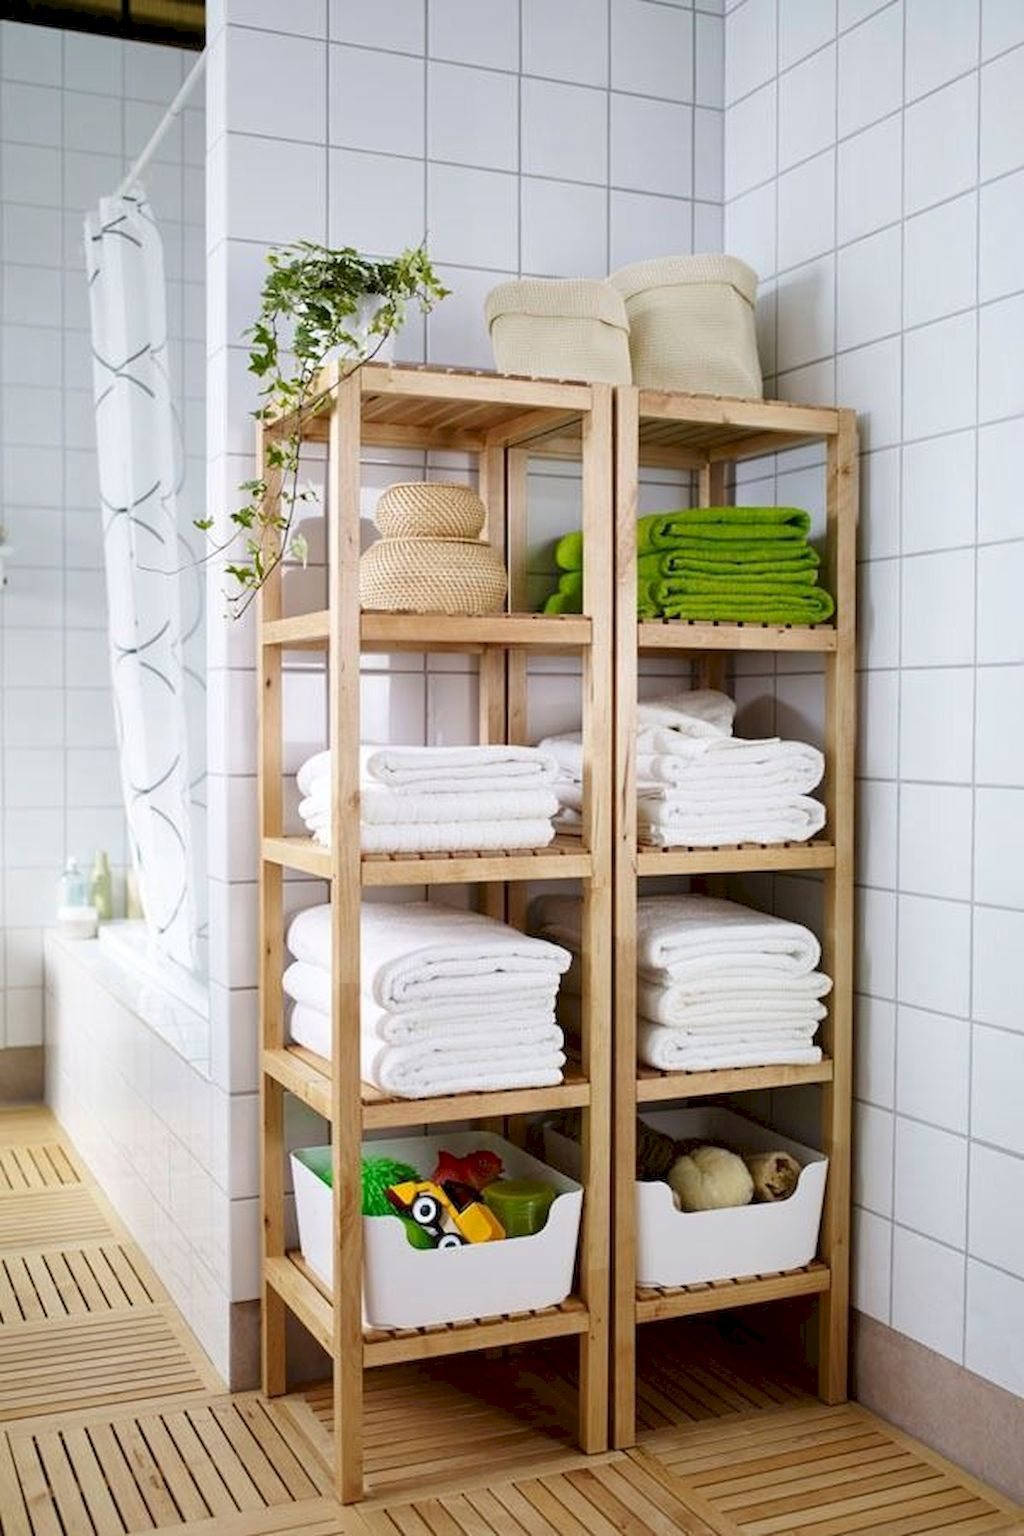 https://elonahome.com/wp-content/uploads/2018/09/Small-bathroom-organization-Ideas-that-will-add-more-spaces-during-relaxation-Part-13.jpg